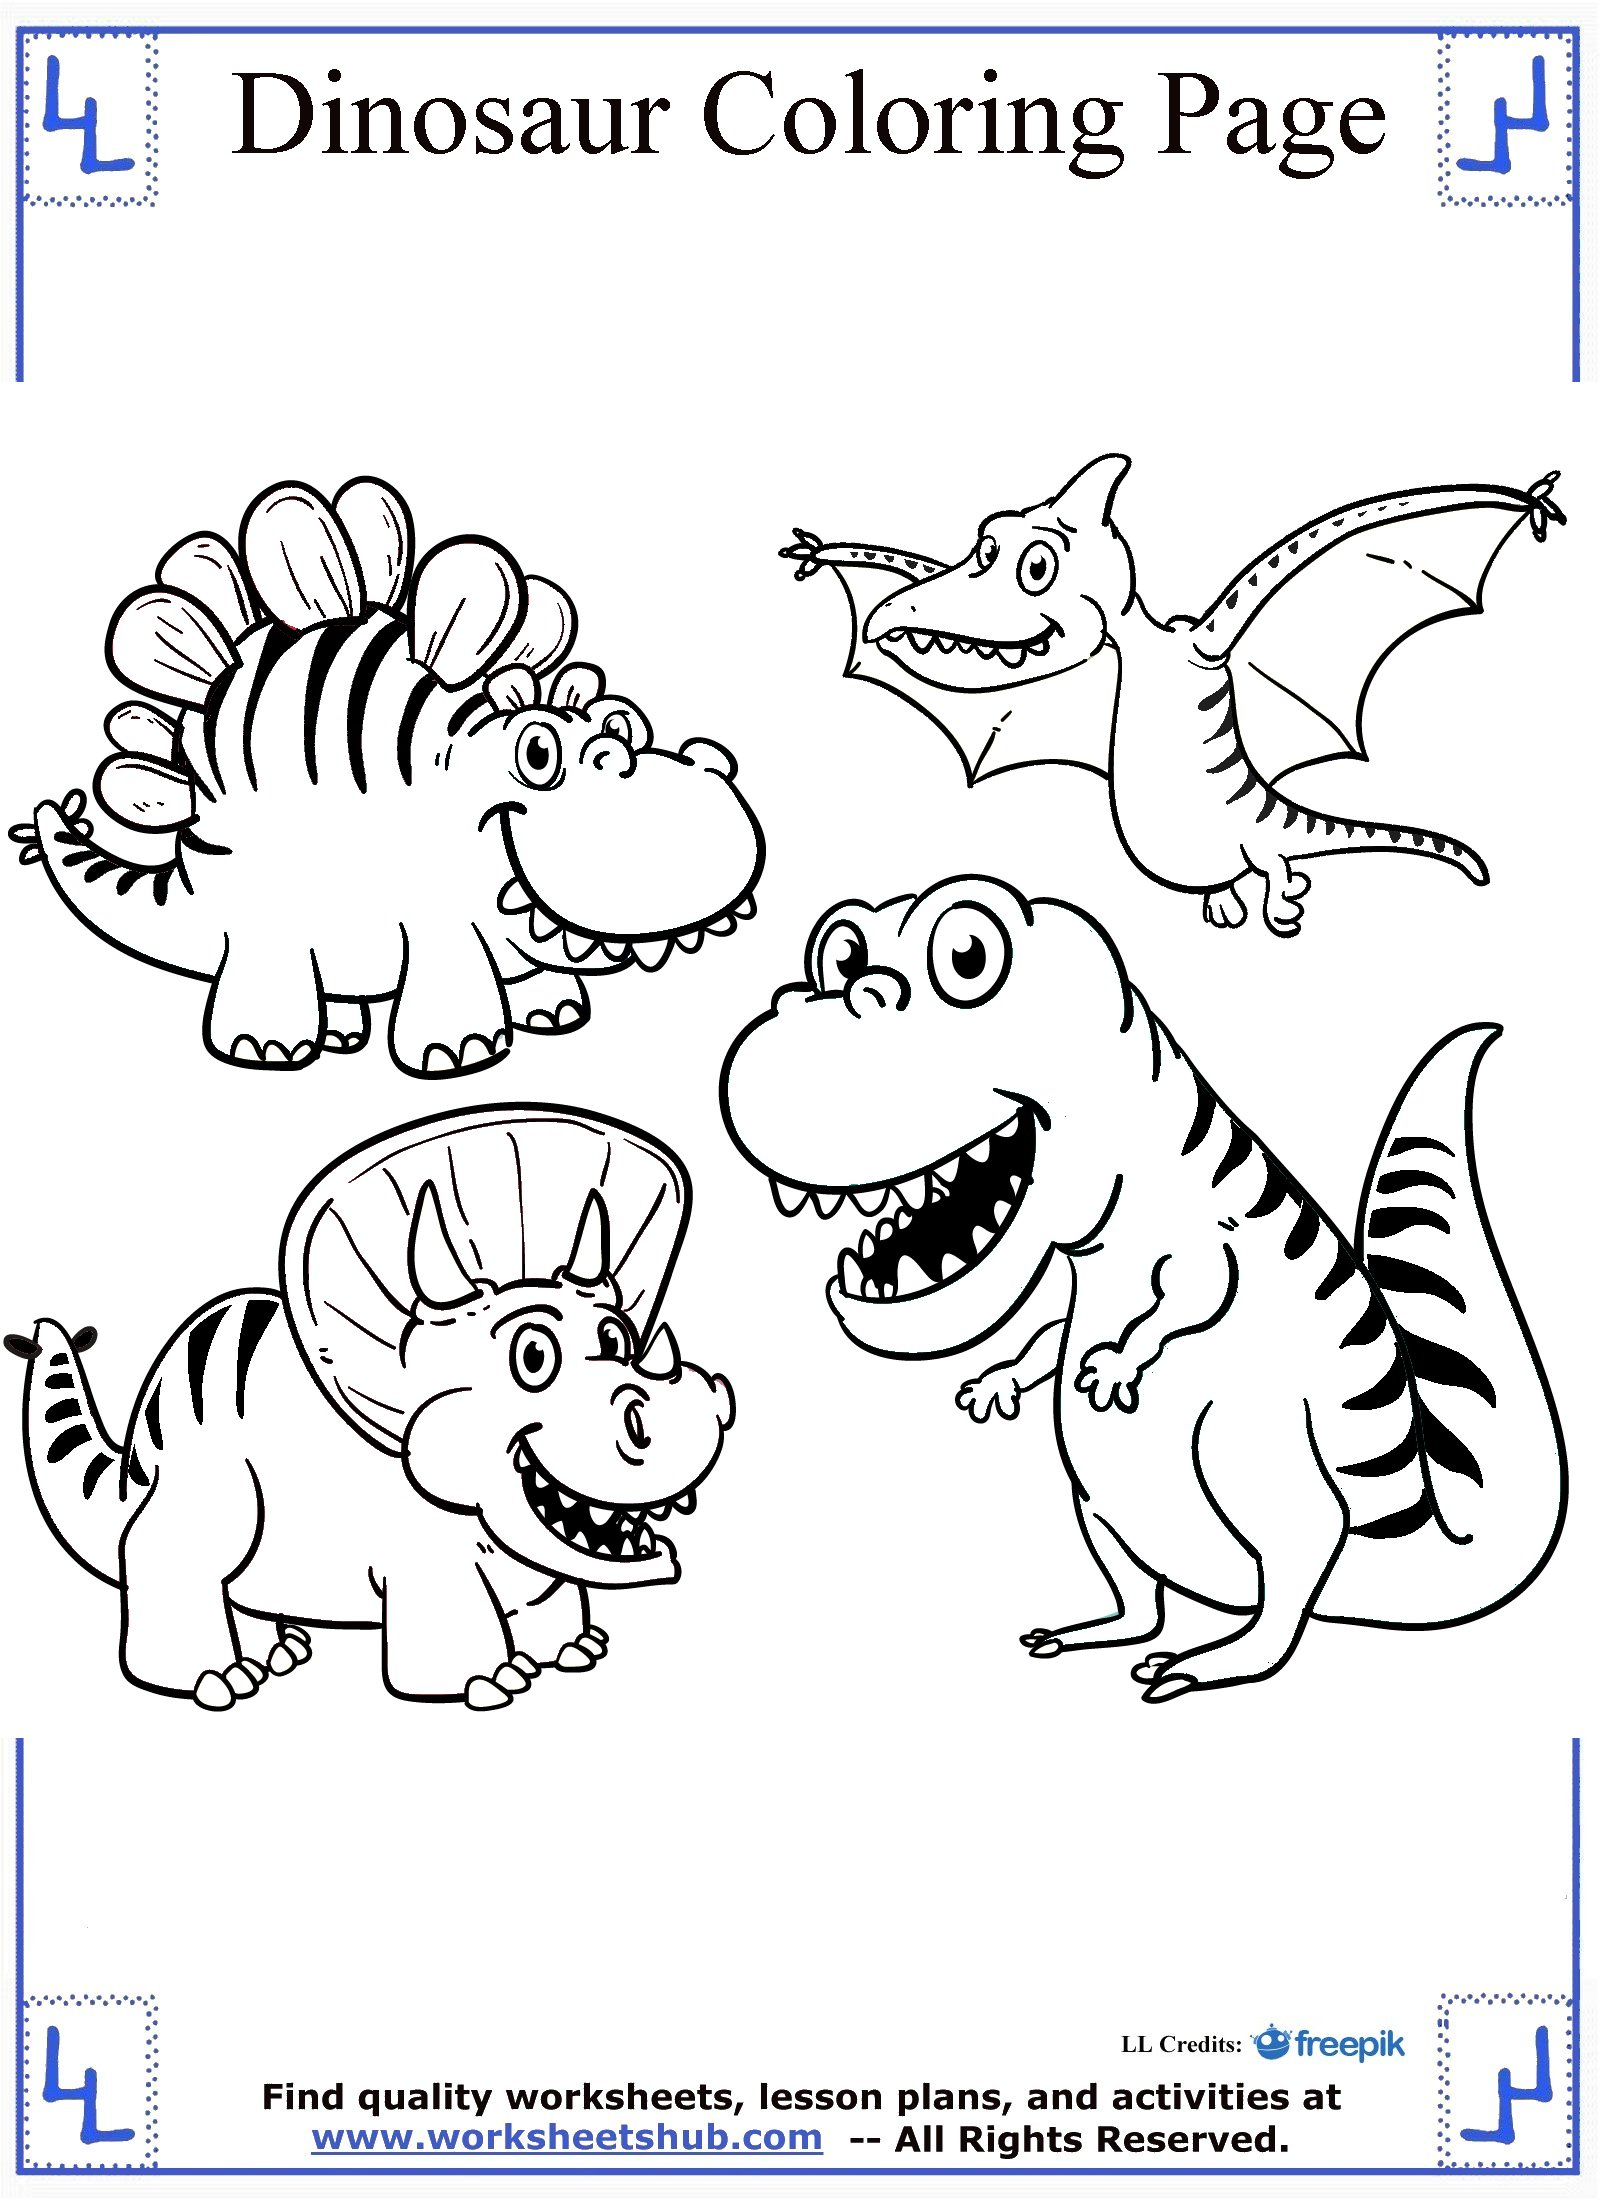 1600x2200 Dinosaurs Coloring Pages Dinosaur Ribsvigyapan Dinosaurs Cartoon